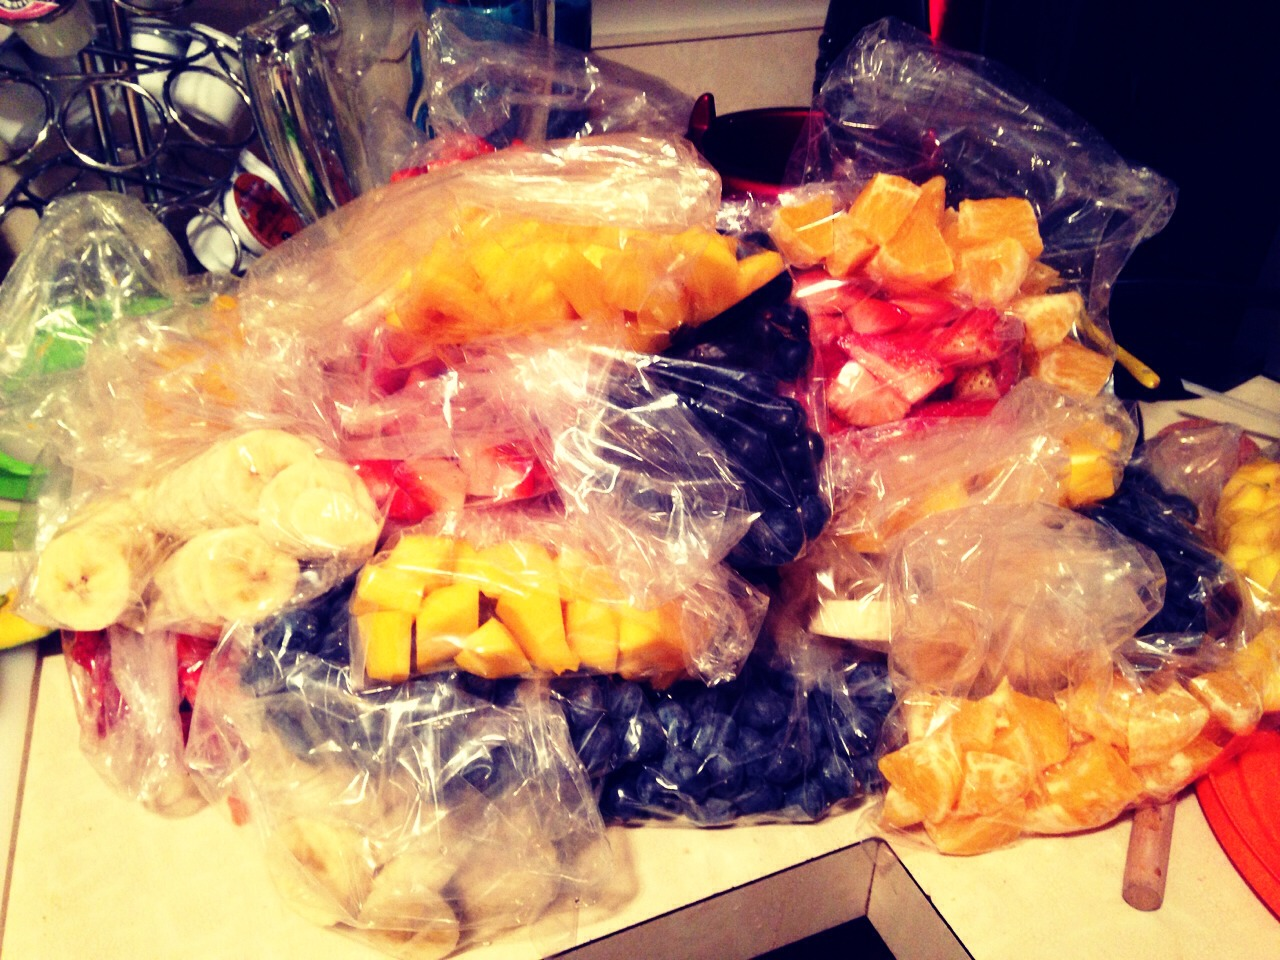 Cut, portion, and freeze fruit to use in place of ice when making smoothies.